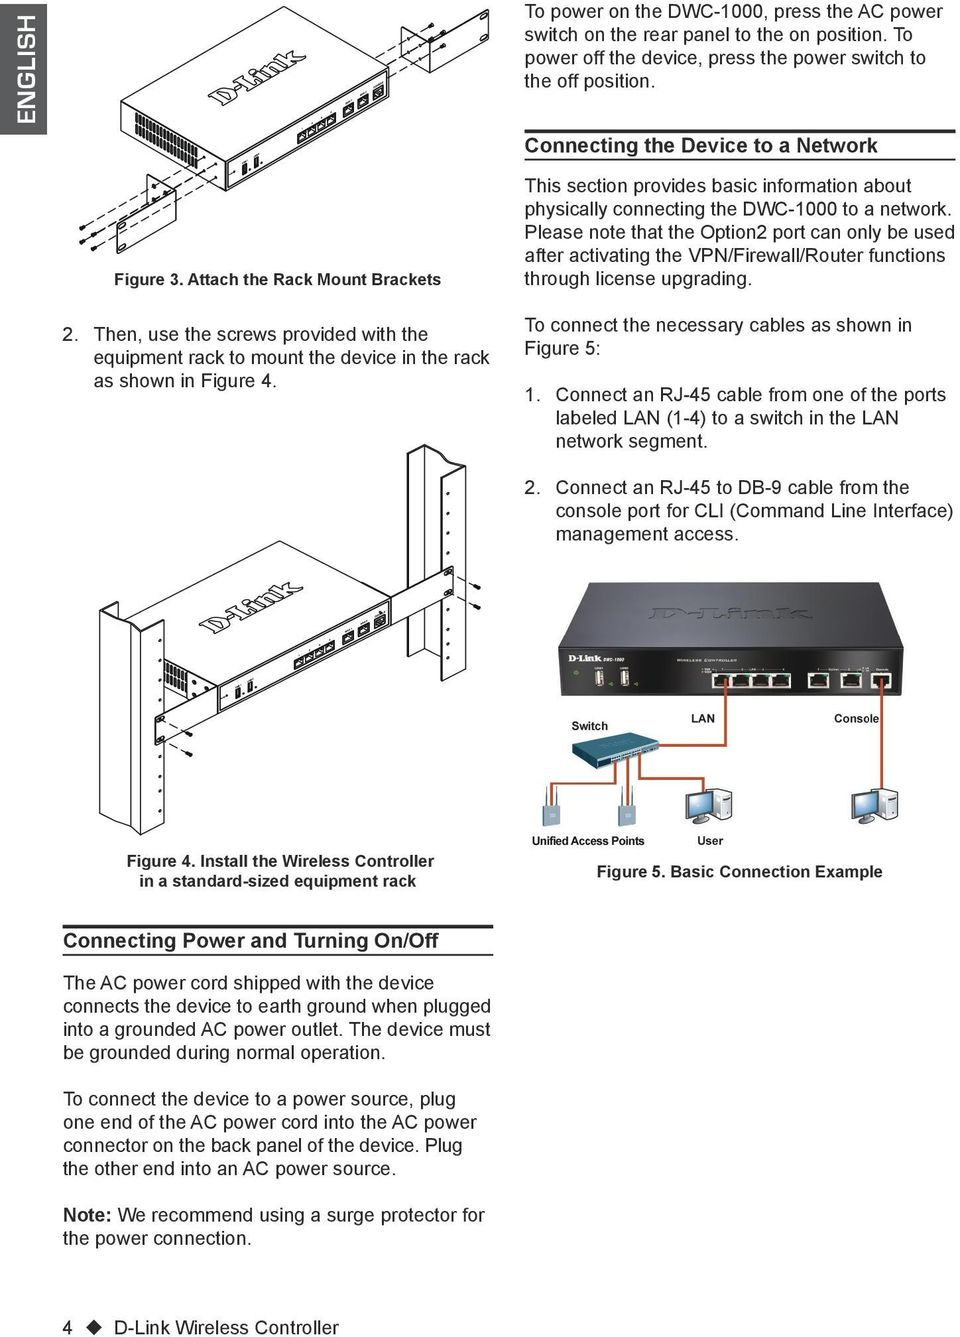 This section provides basic information about physically connecting the DWC-1000 to a network.